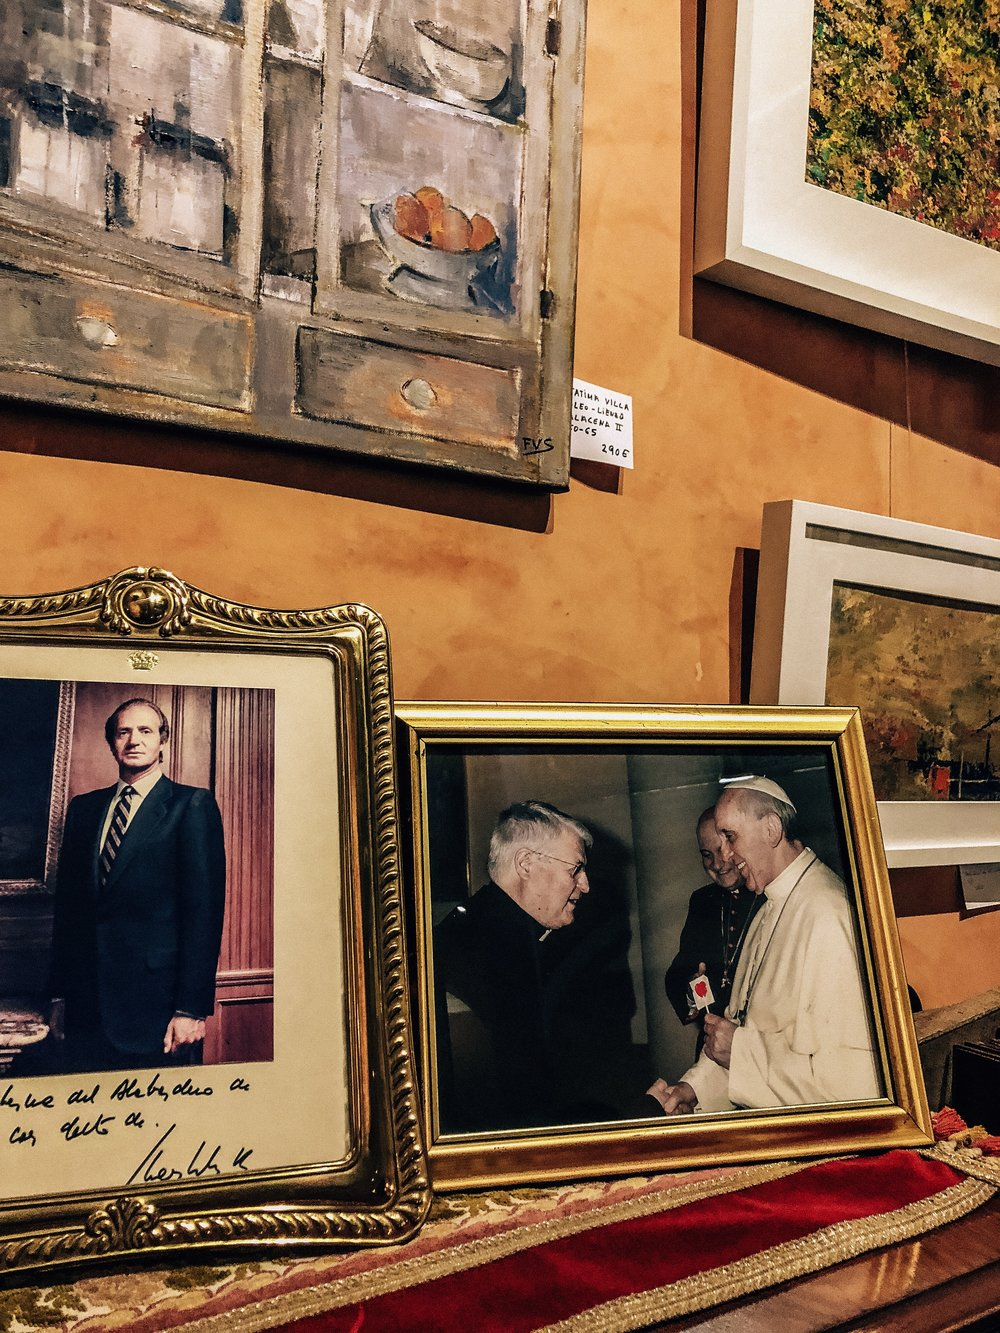 Homey decor at Taberna Alabardero with a photo of the Pope holding a lollipop.